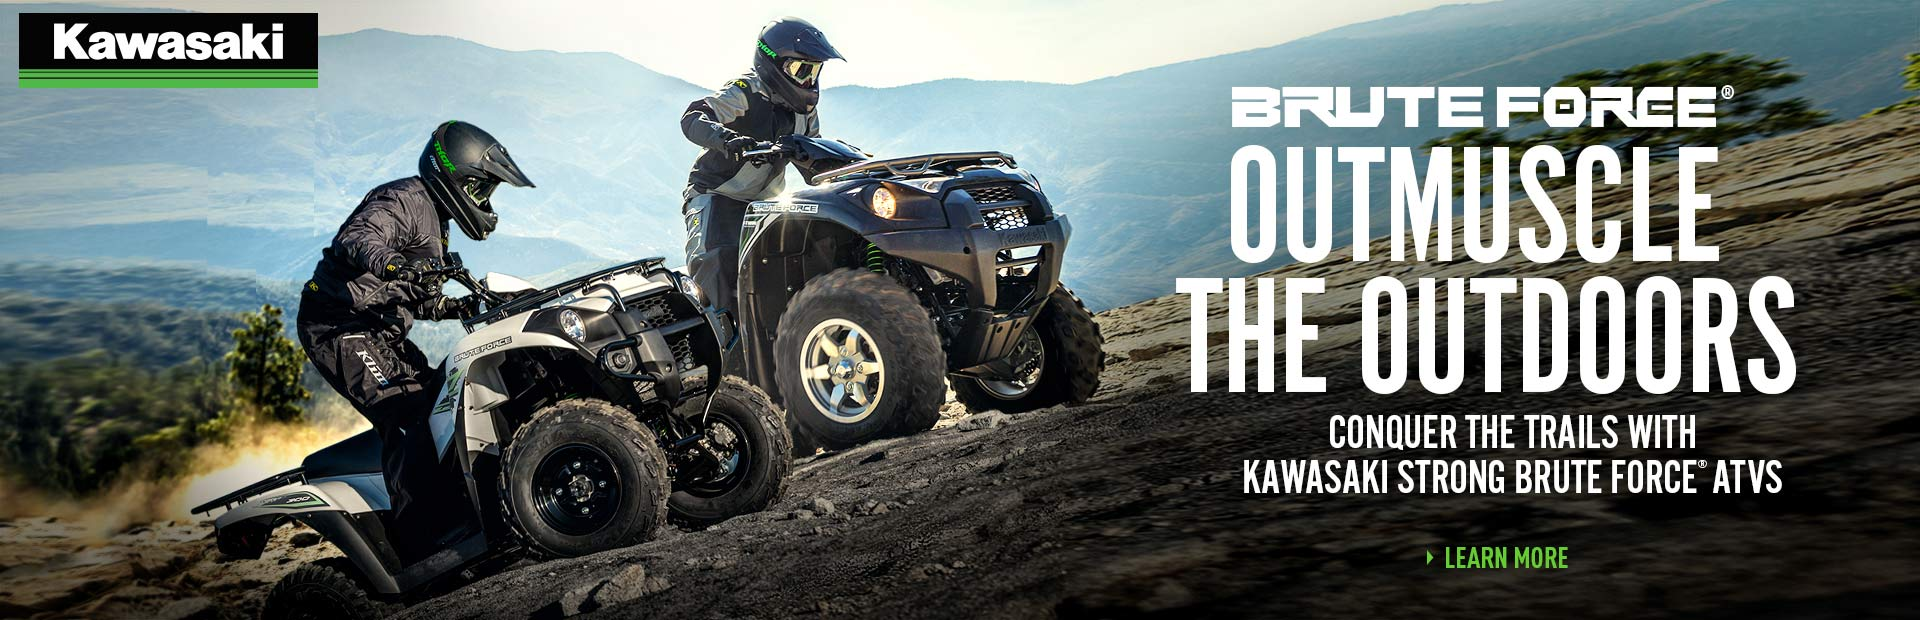 2018 Kawasaki Brute Force For Co-Op